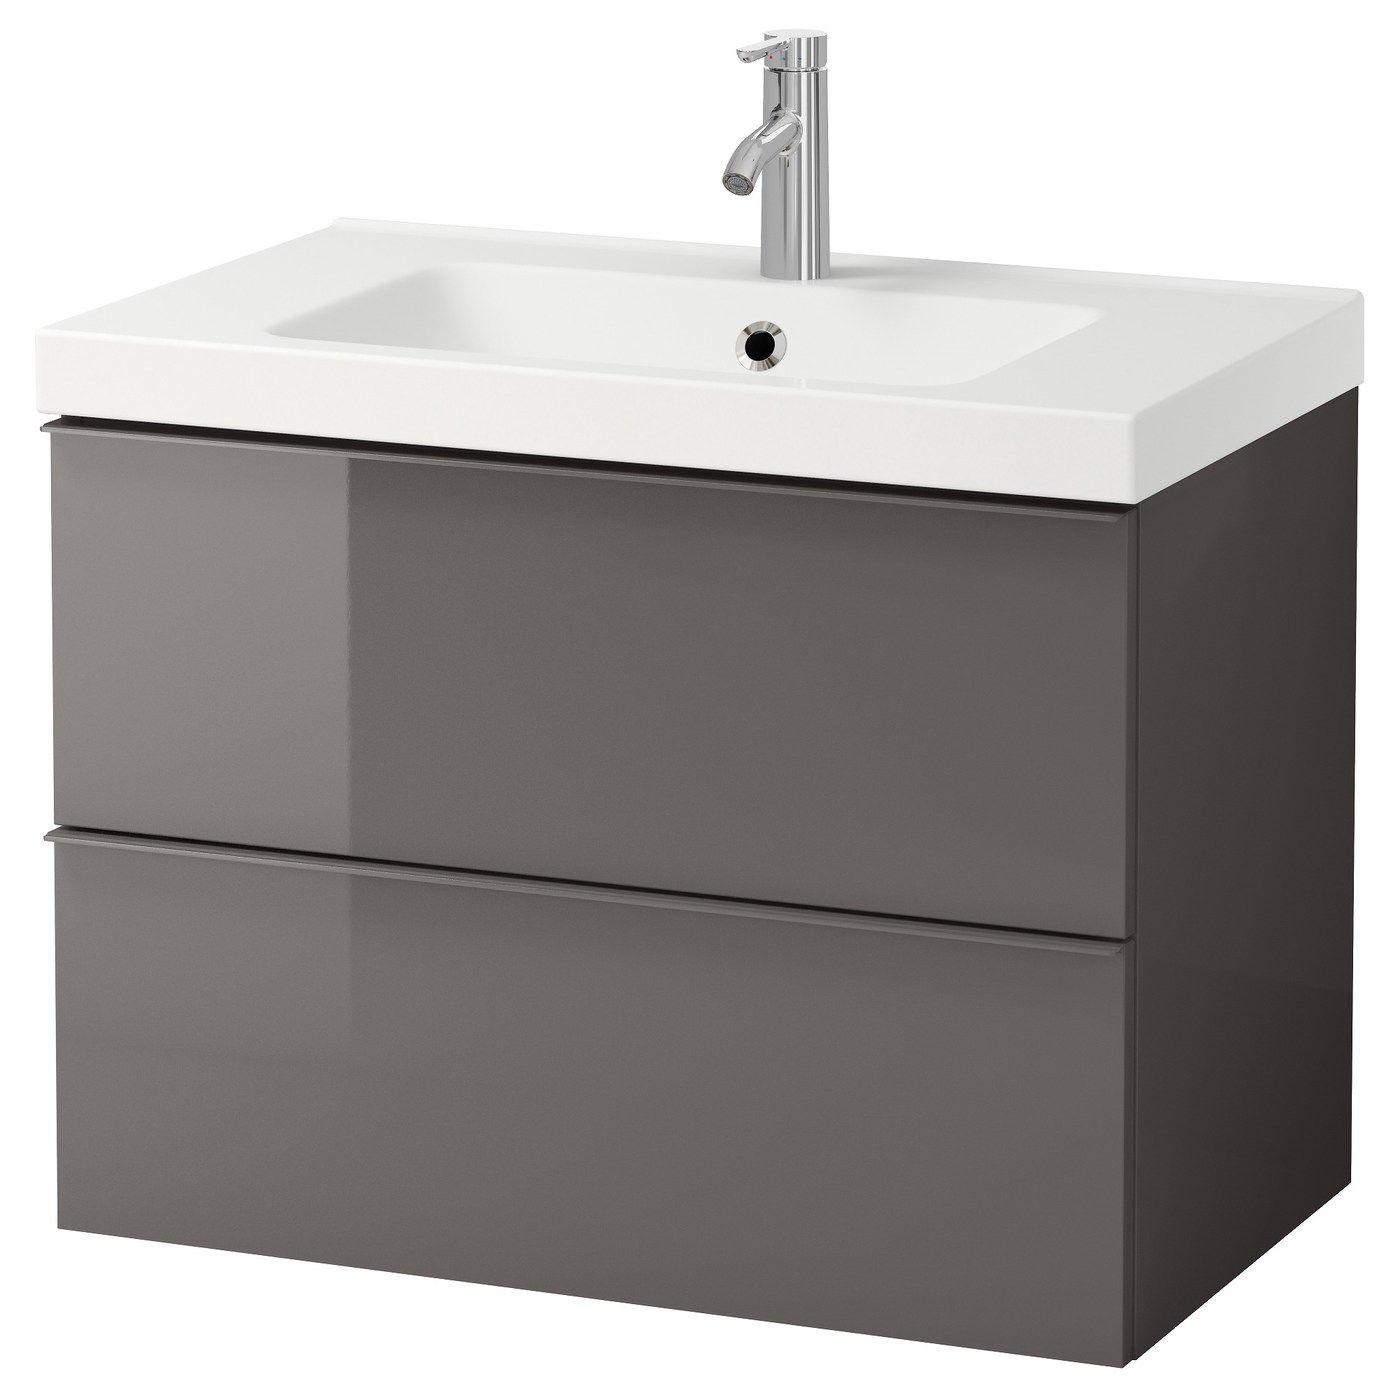 Bathroom Sink Units In 2020 Ikea Ikea Bathroom Sink